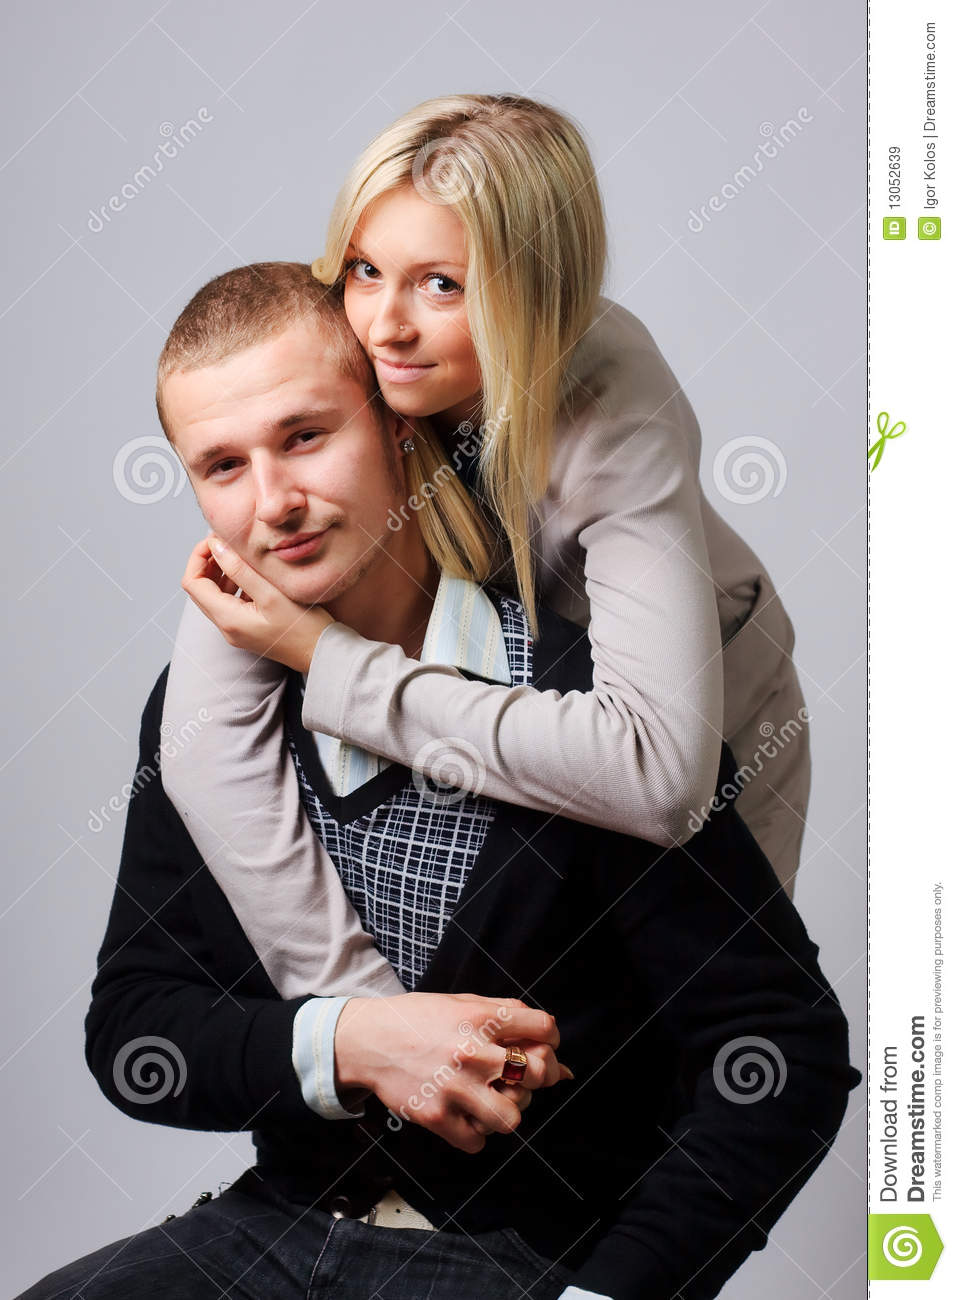 Girl Guy Makeup Youtube: Guy And Girl Hugging Royalty Free Stock Images